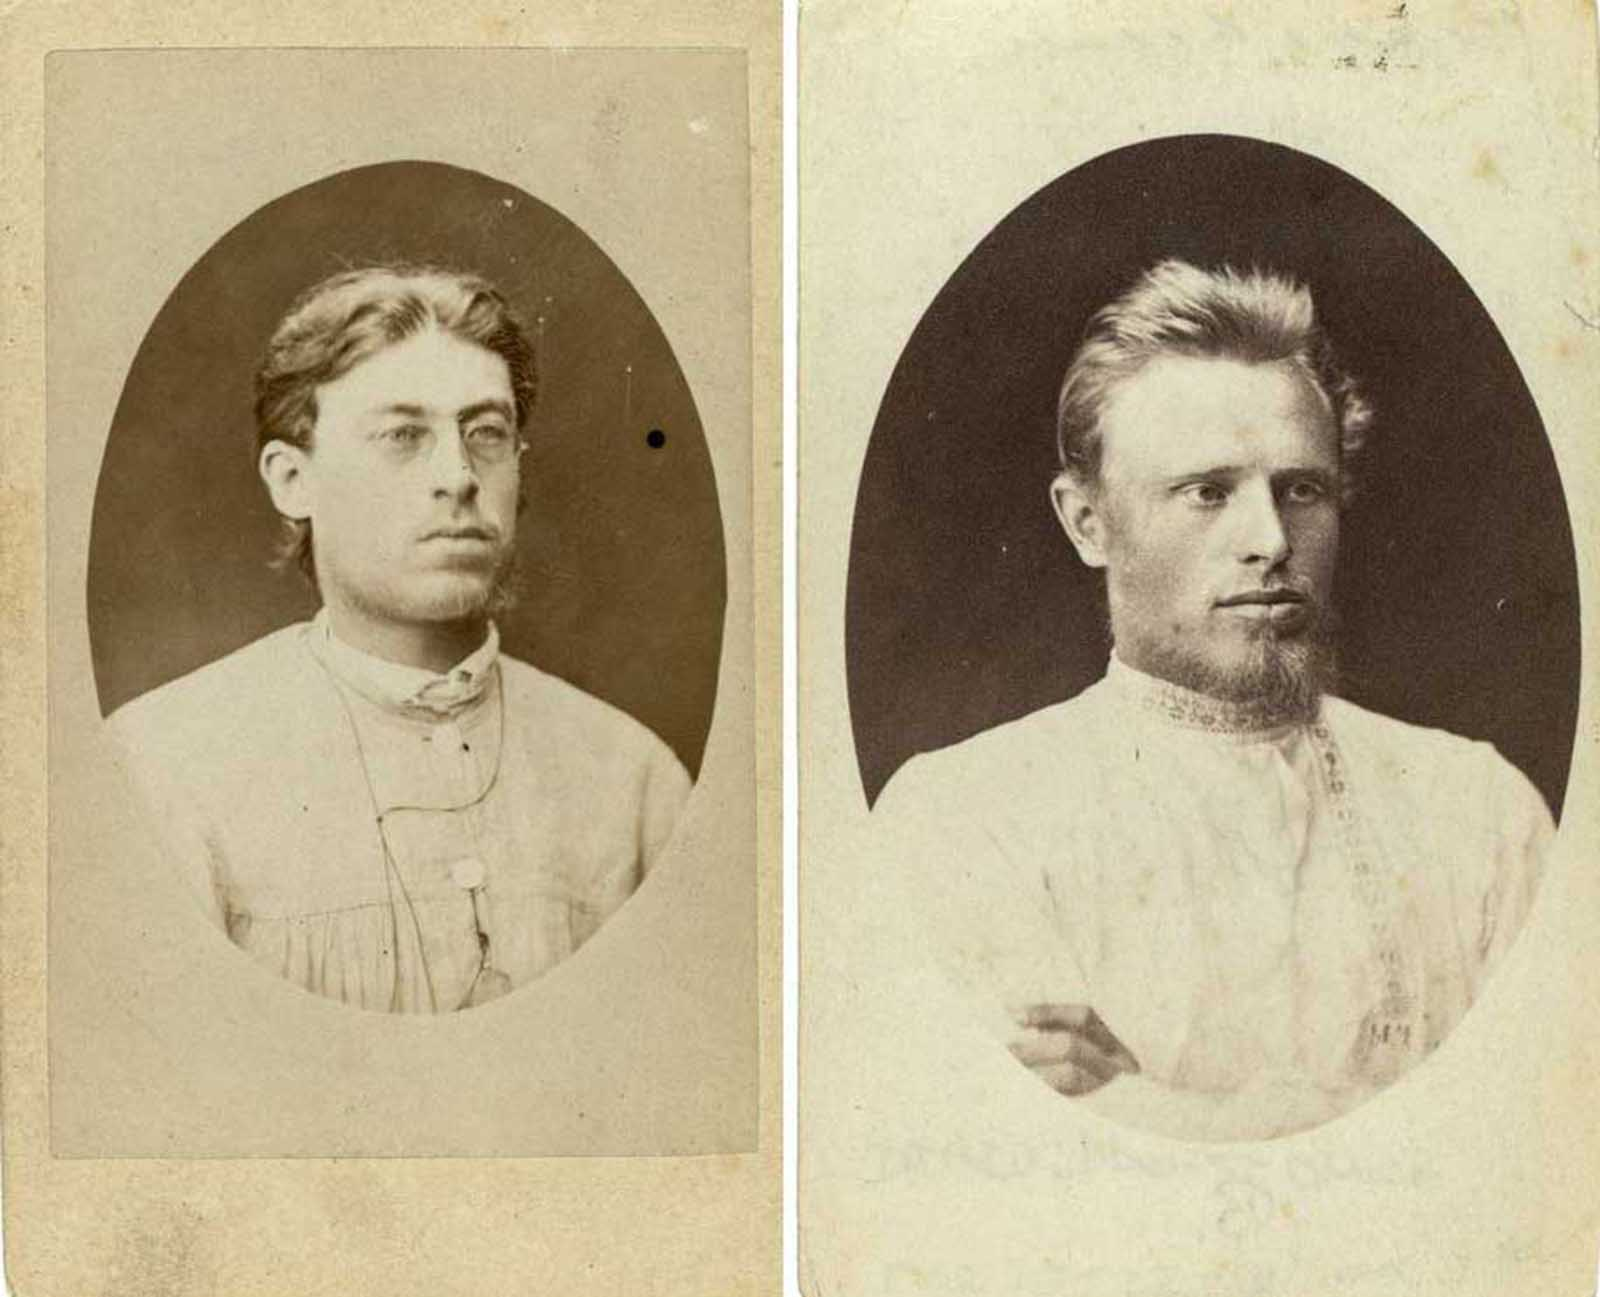 (Left) A writer from Odessa, Nikolai Alekseevich Vitashevskii participated in military opposition in 1878 and was imprisoned in Kharkov Central Prison. Sentenced to four years of hard labor, he was exiled to Yakutsk. (Right) Ivan Cherniavski and his wife were banished to Tobolsk province by administrative process in 1878. In 1881, Cherniavski refused to take the oath of allegiance to Tsar Alexander III and they were sent further east.